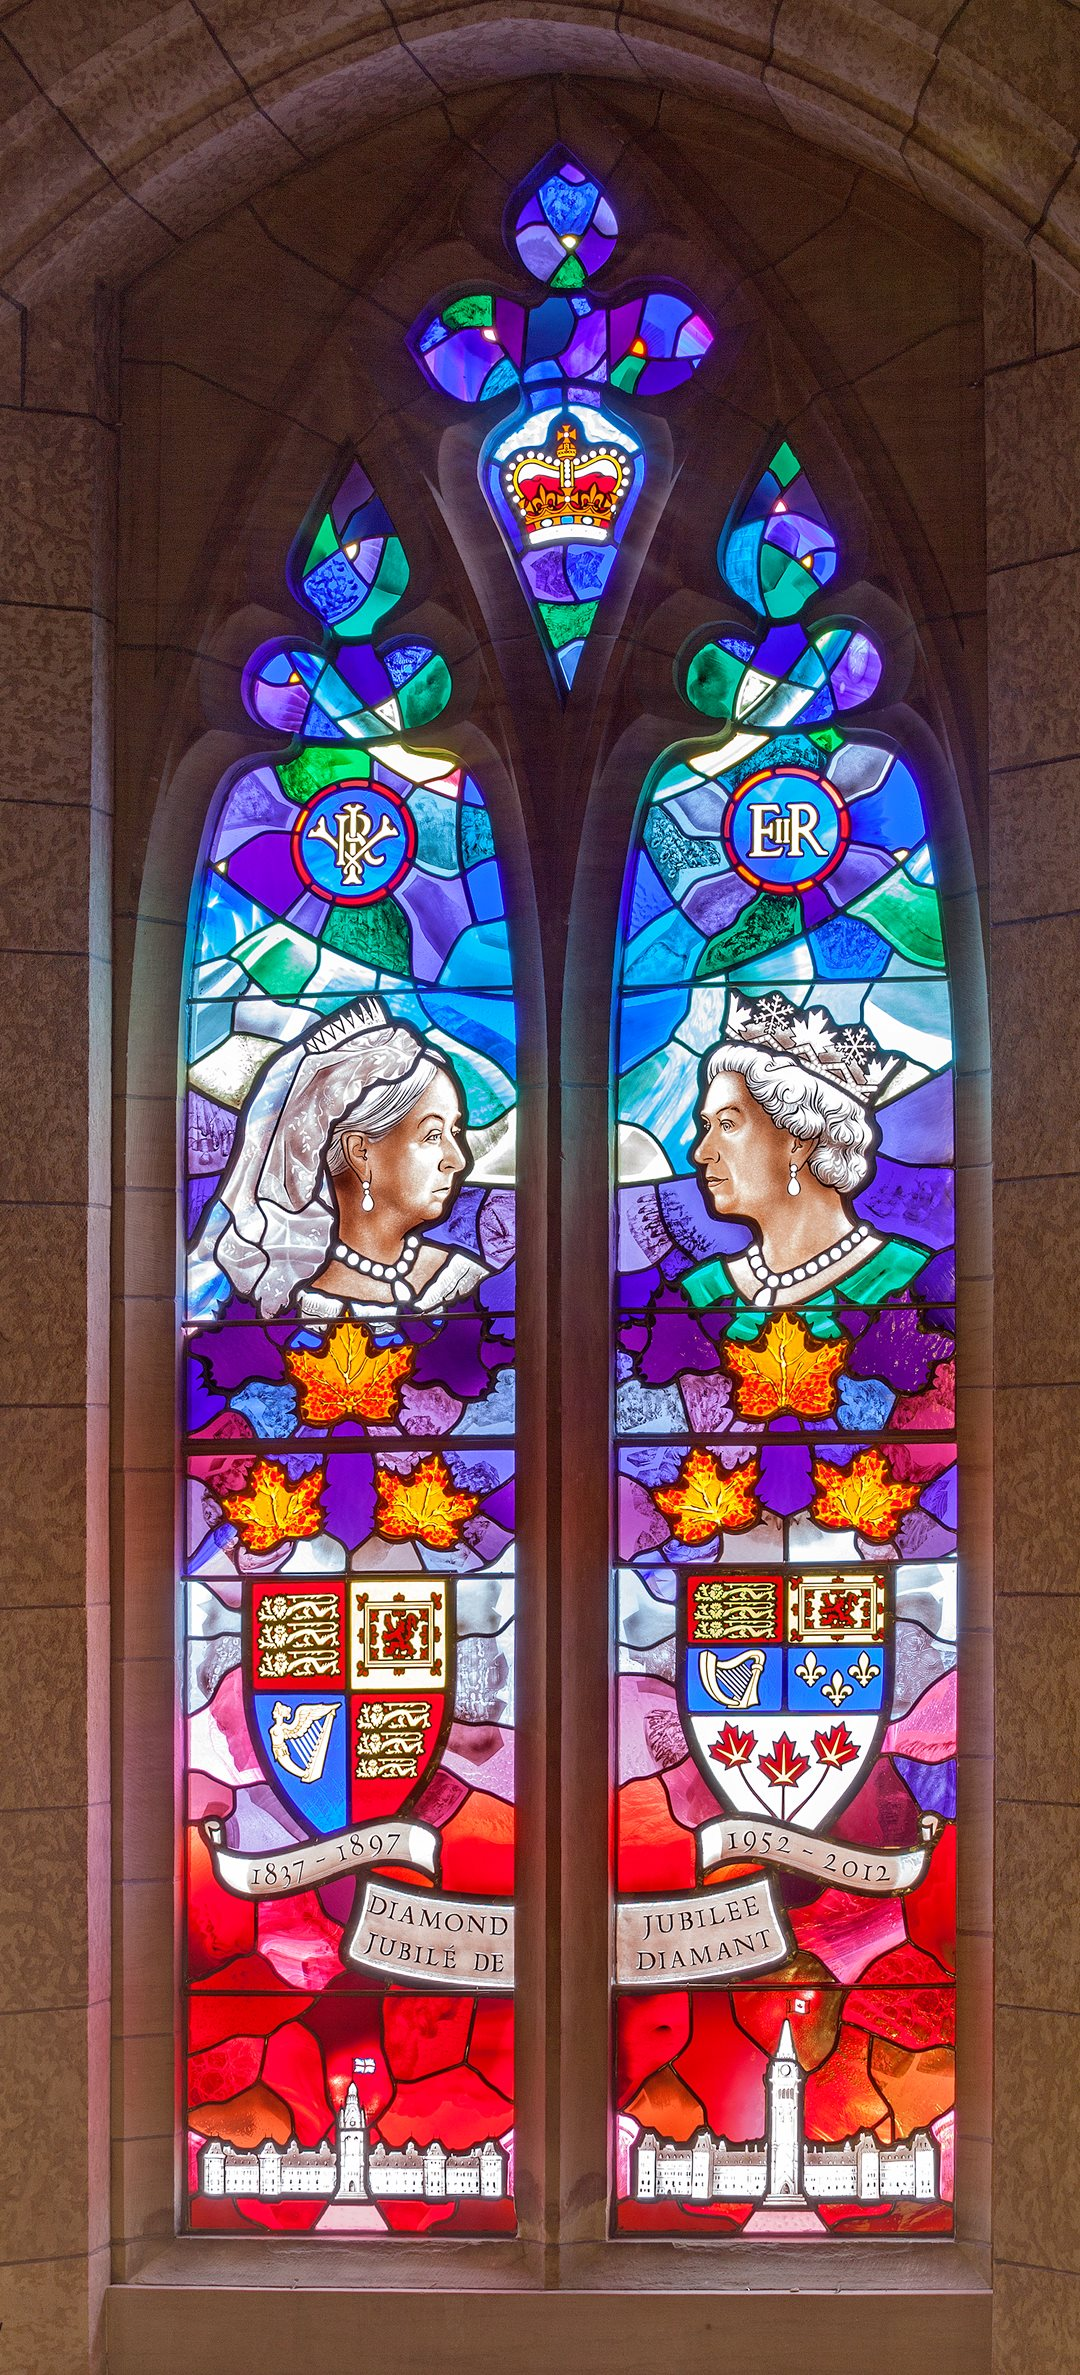 A stained-glass window above the Senate entrance to Centre Block depicts Queen Victoria on the occasion of her Diamond Jubilee in 1897, beside her great-great-granddaughter, Queen Elizabeth II, who marked her own Diamond Jubilee 115 years later in 2012. Below Victoria appears the original Centre Block and its iconic Victoria Tower, 19 years before they were gutted in the 1916 fire.